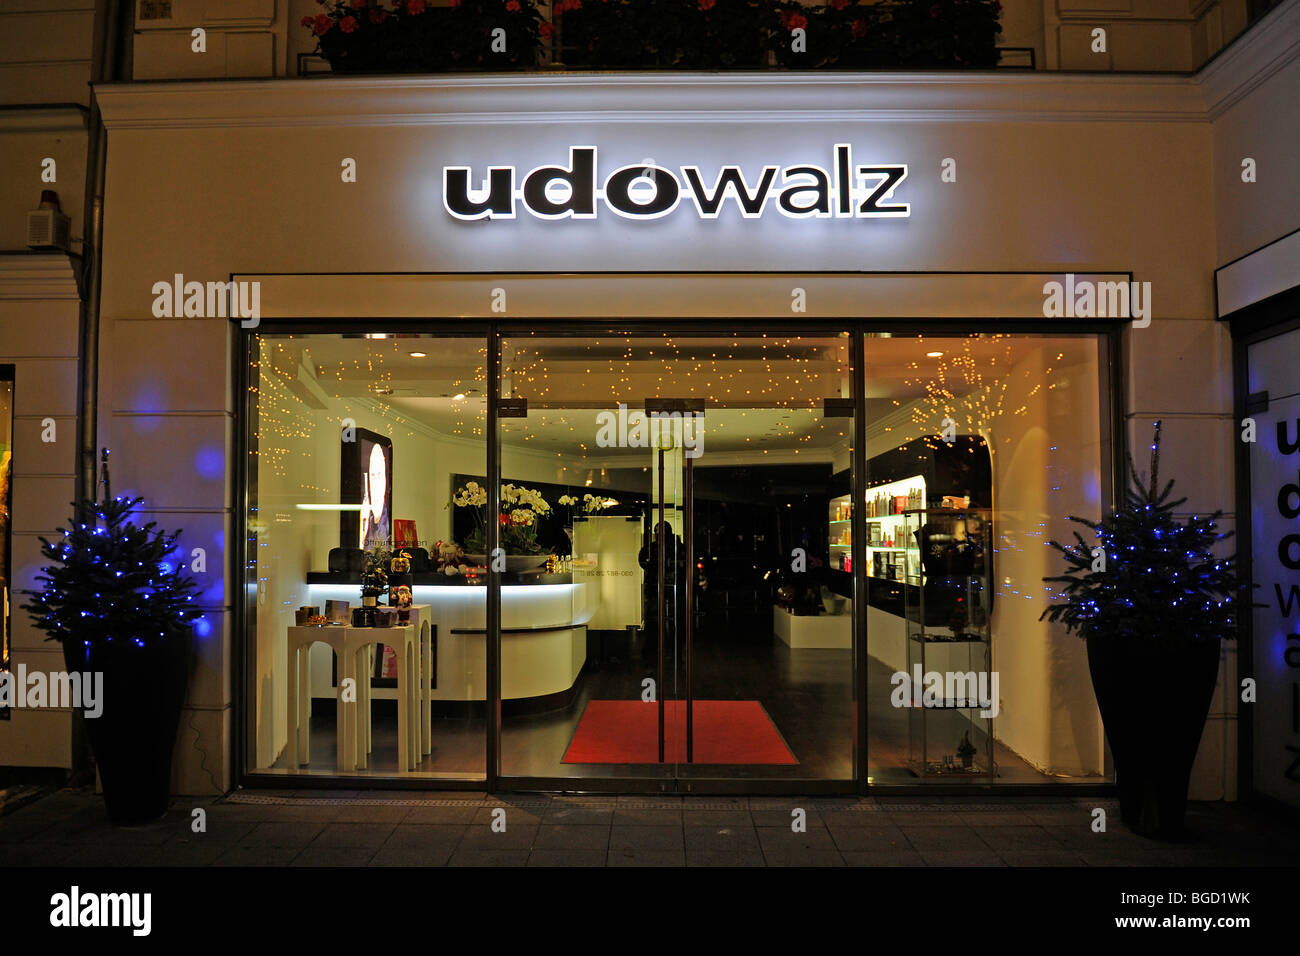 Boutique de la célébrité coiffure Udo Walz sur le Kurfürstendamm, Berlin, Germany, Europe Photo Stock